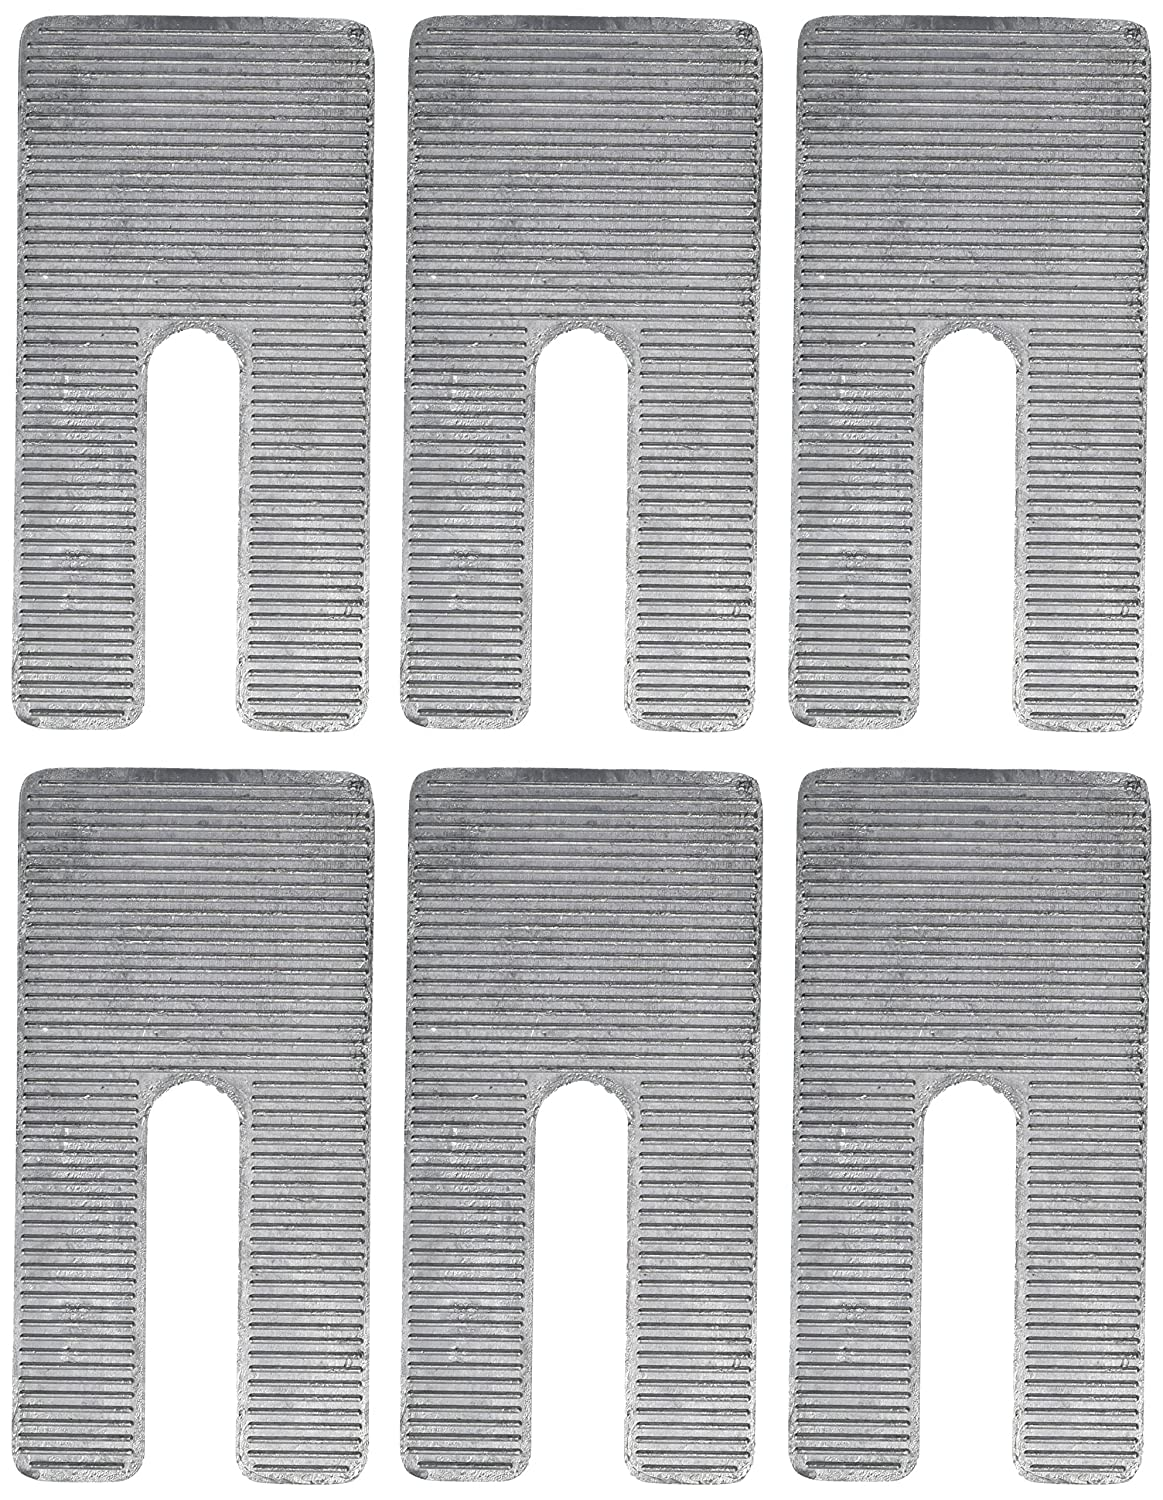 Specialty Products Company 10522 3 x 6 x 1.5/° Aluminum Alloy Shim, Pack of 6